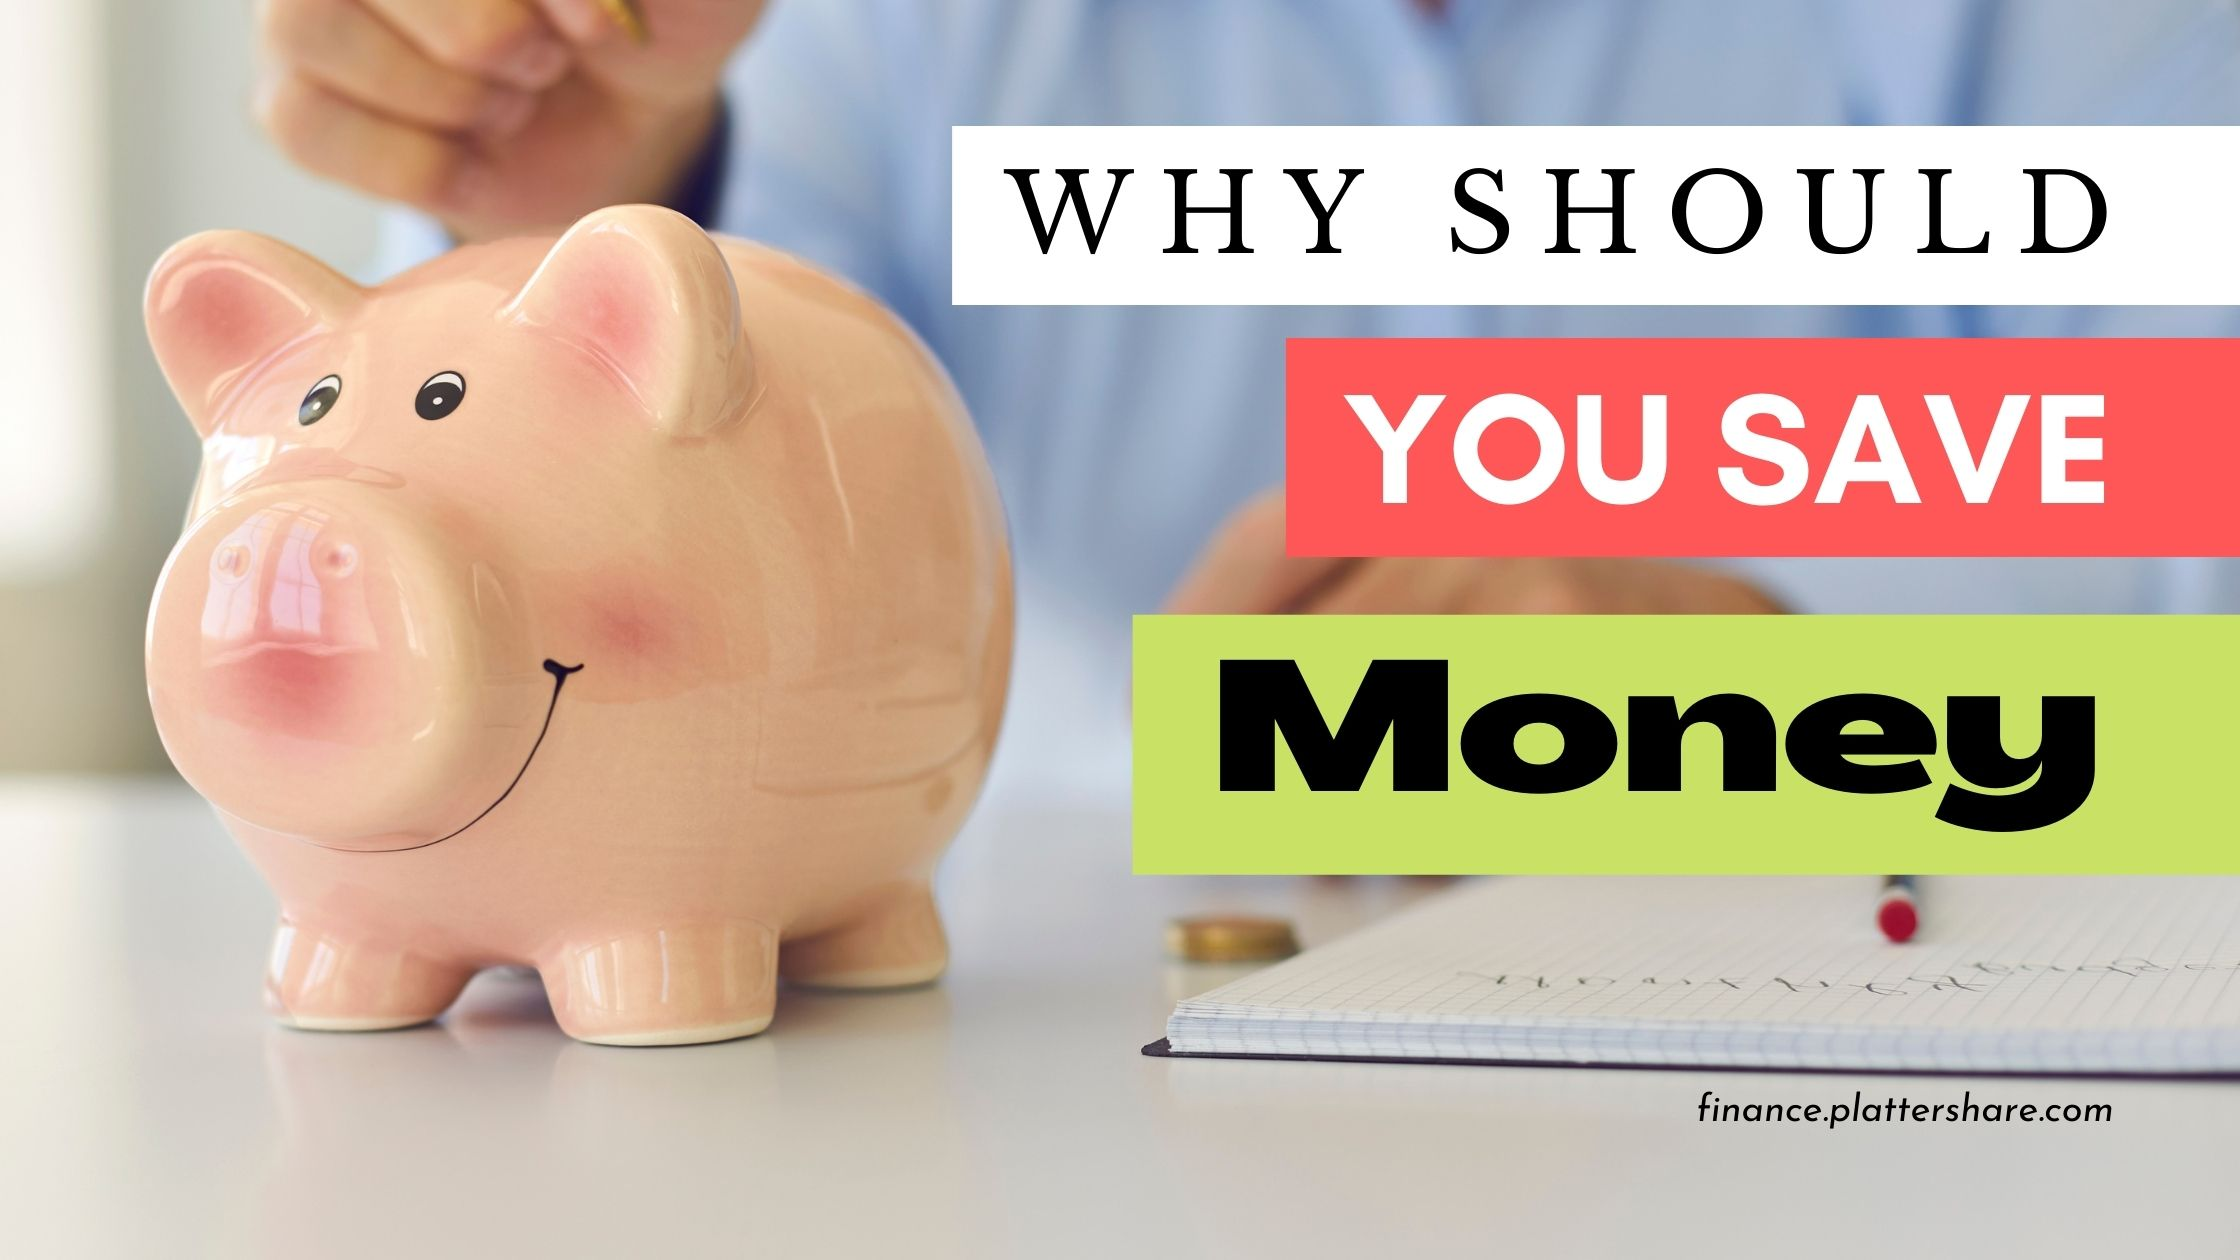 Why should you save money